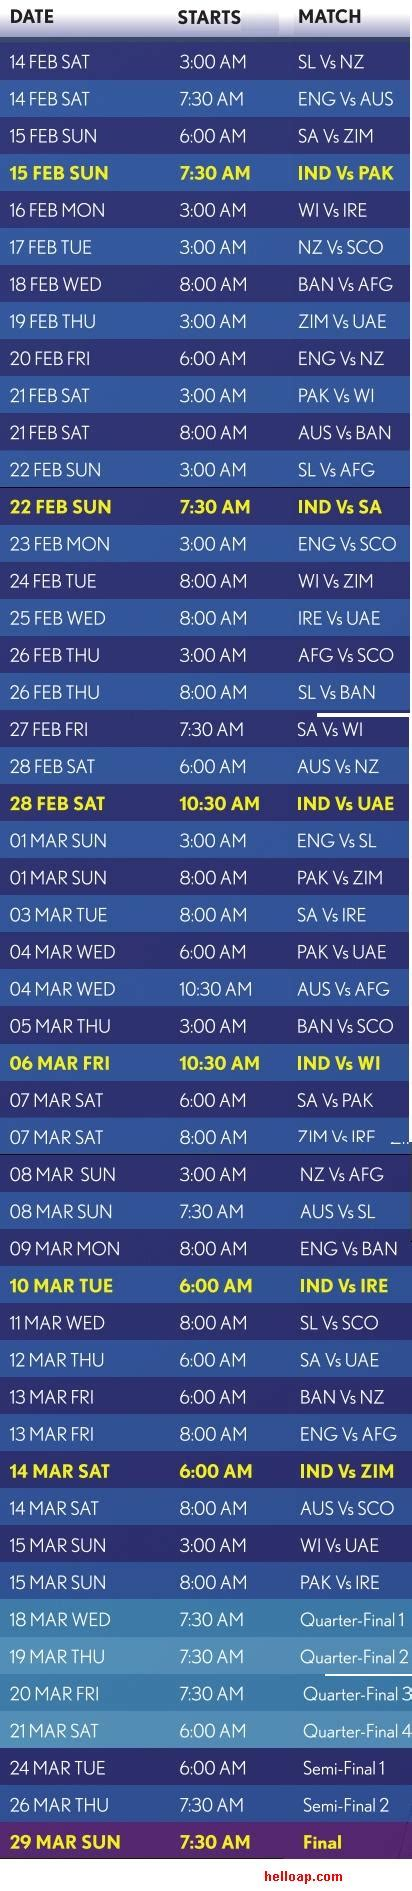 2015 cricket world cup match schedule icc world cup cricket schedule 2015 and india matches